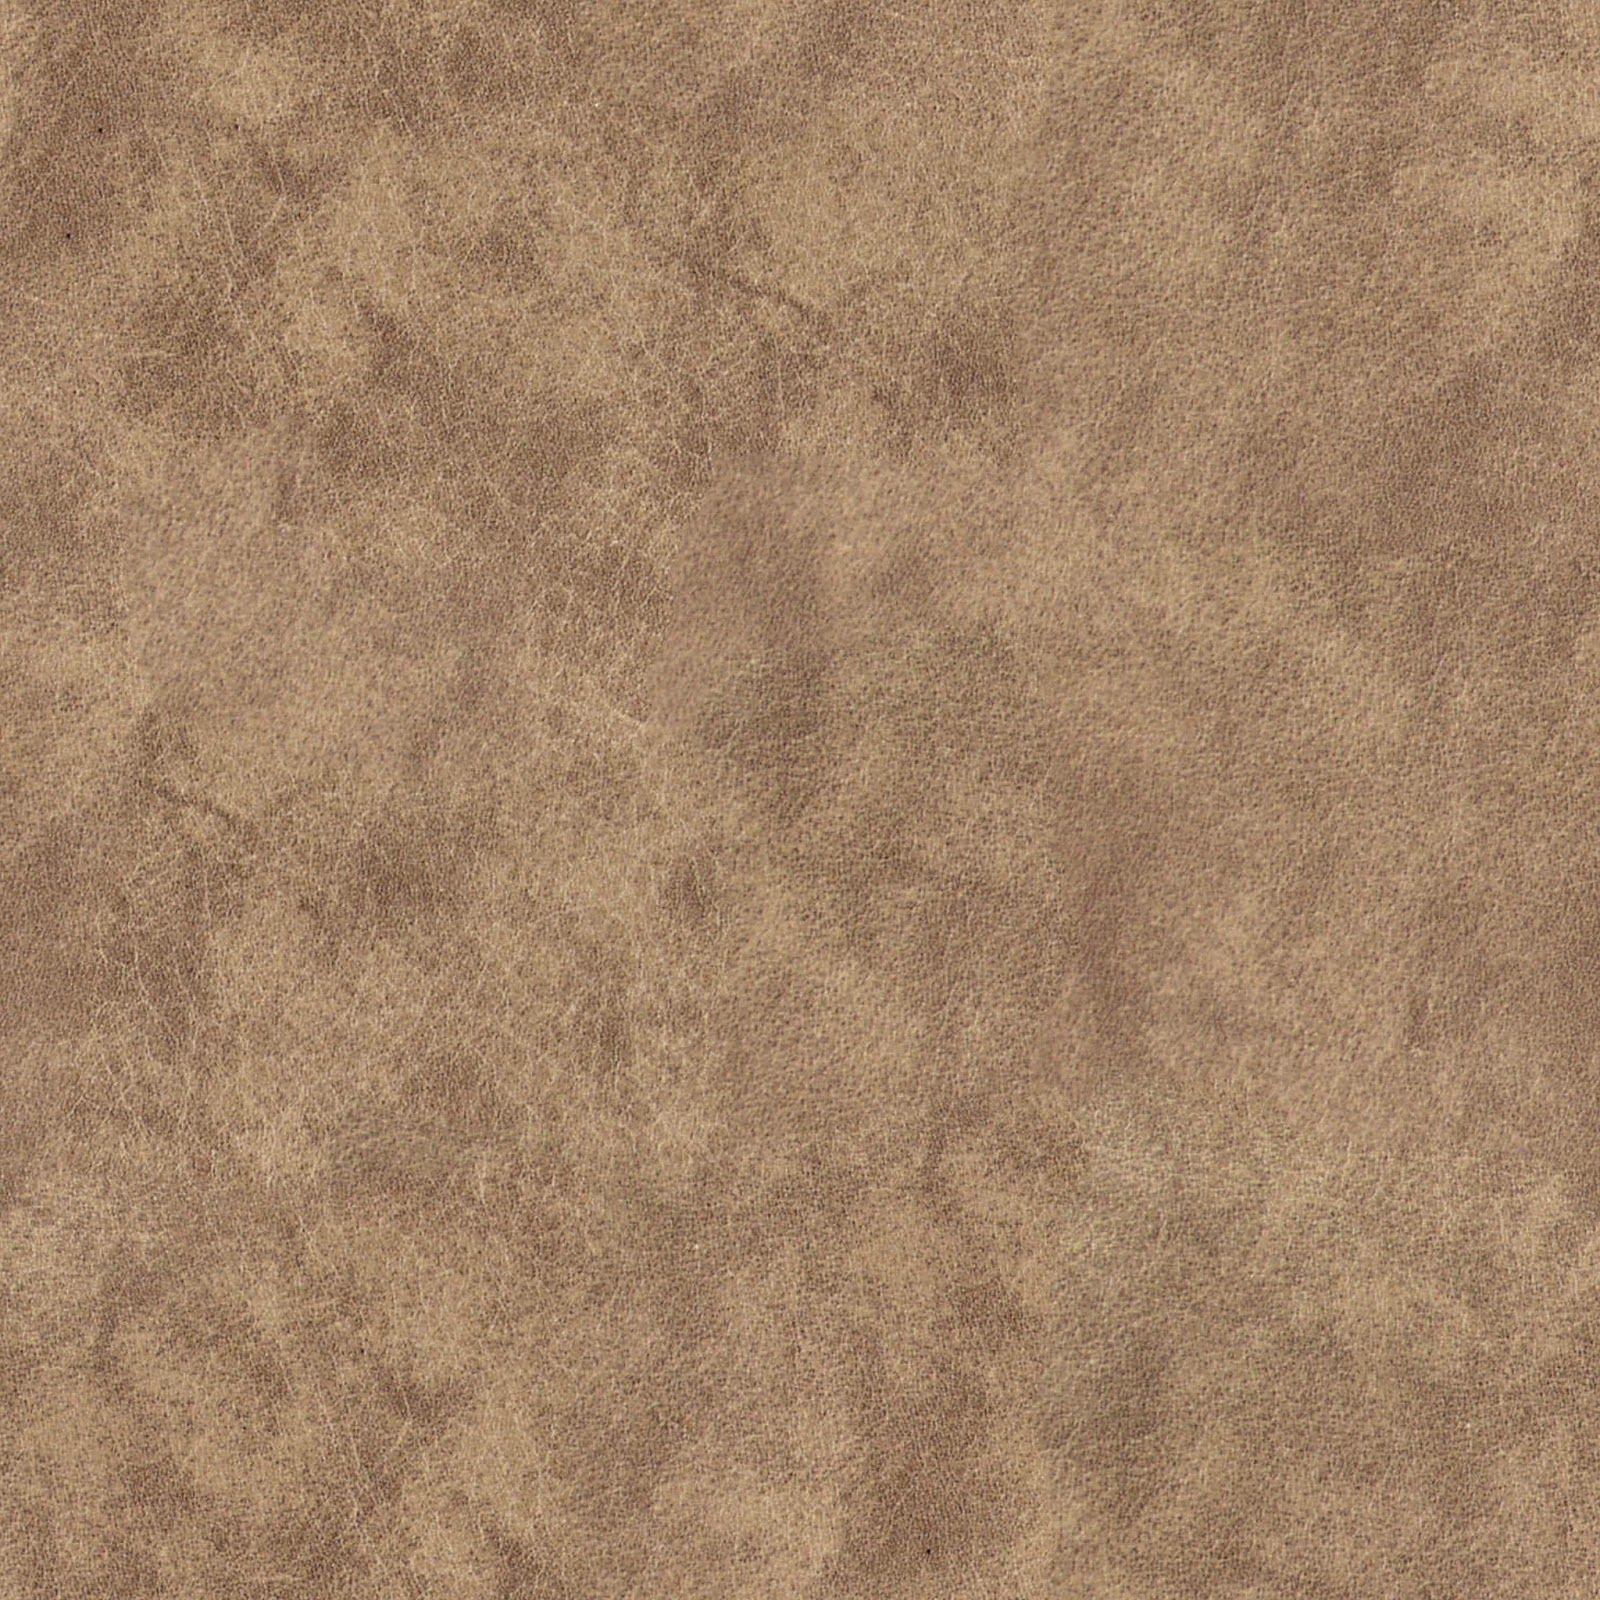 Brown Seamless Fabric Textures Pin By 陈强 On Fabric 布艺 In 2019 Leather Texture Leather